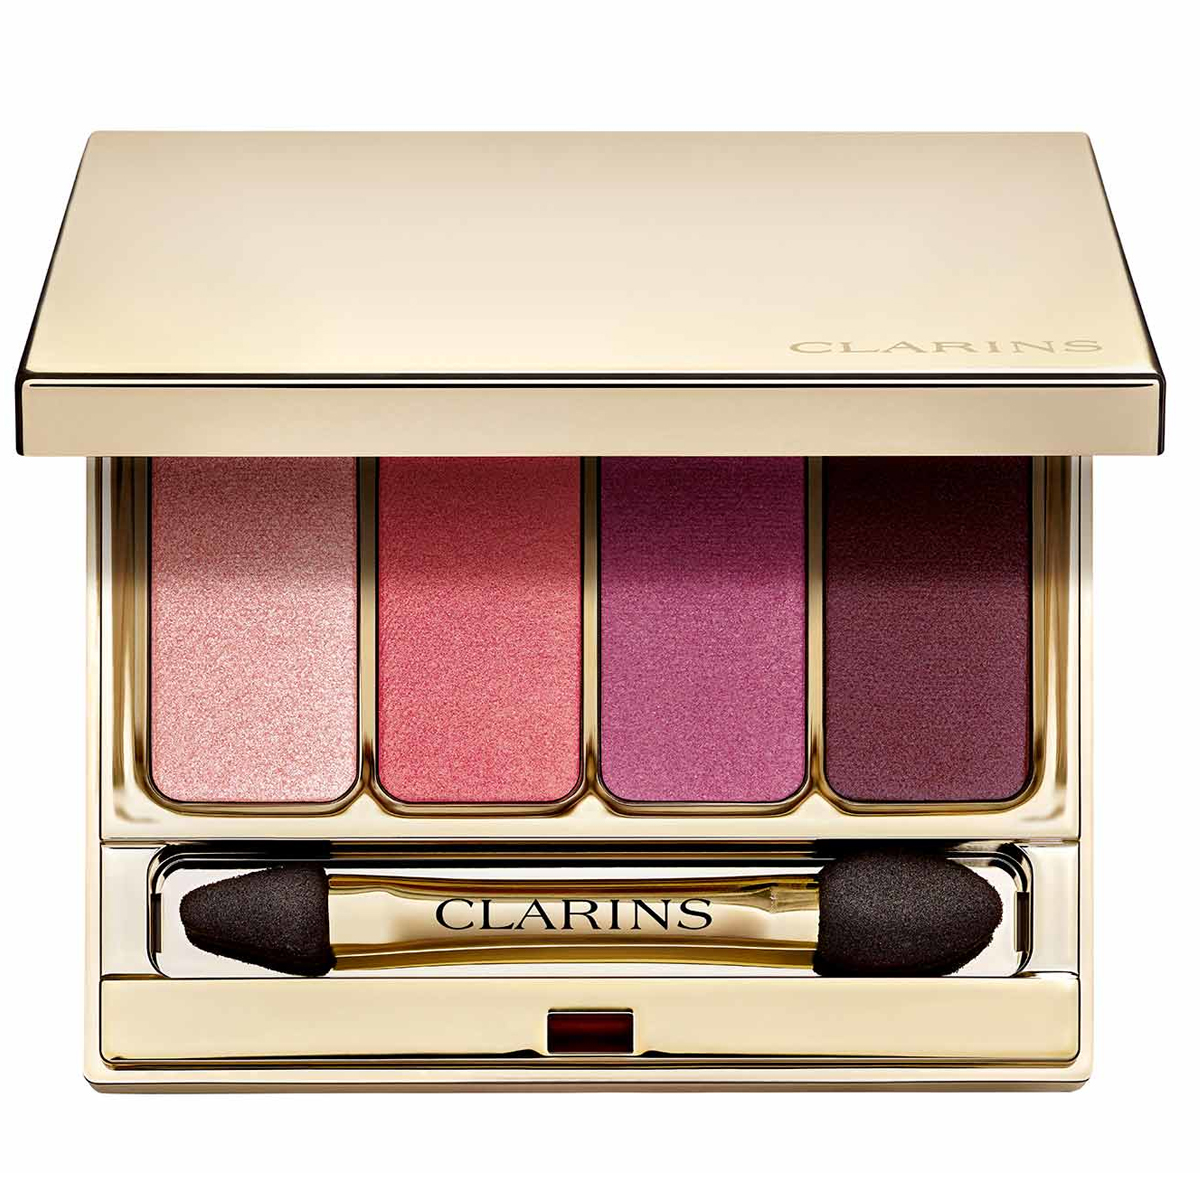 Clarins 4 Colour Eyeshadow Palette 07 Lovely Rose